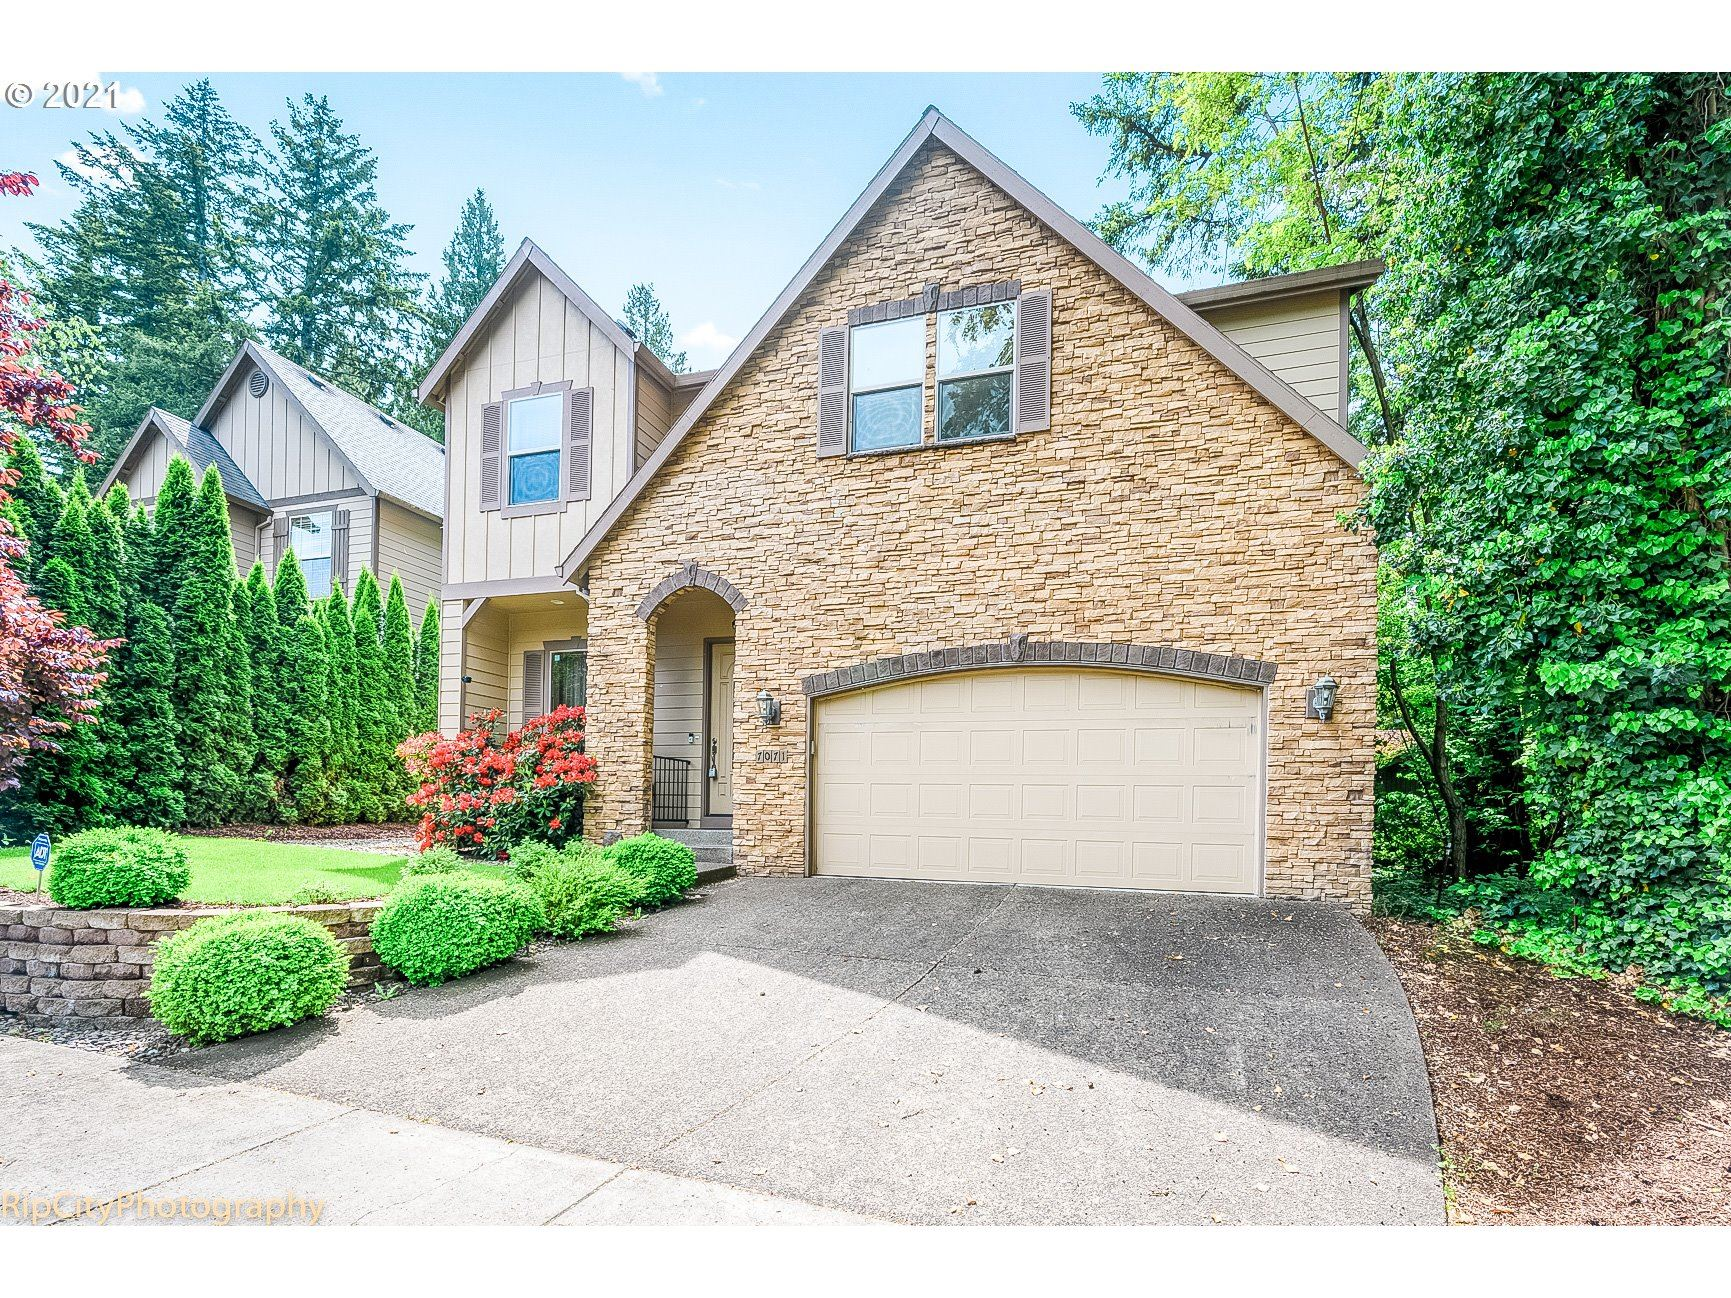 7071 SW 77TH AVE, Portland, OR 97223 - MLS#: 21344479